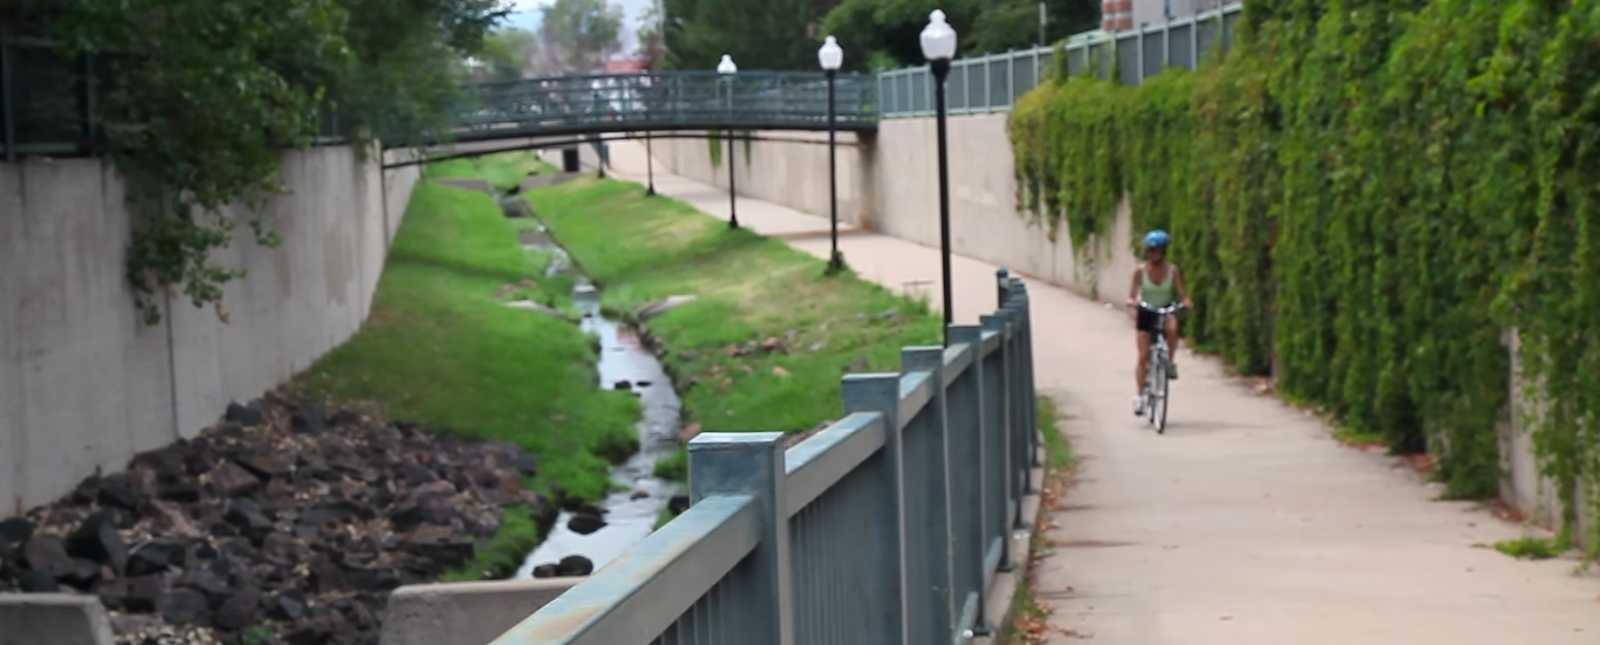 Bicycle rider on bike path in Littleton